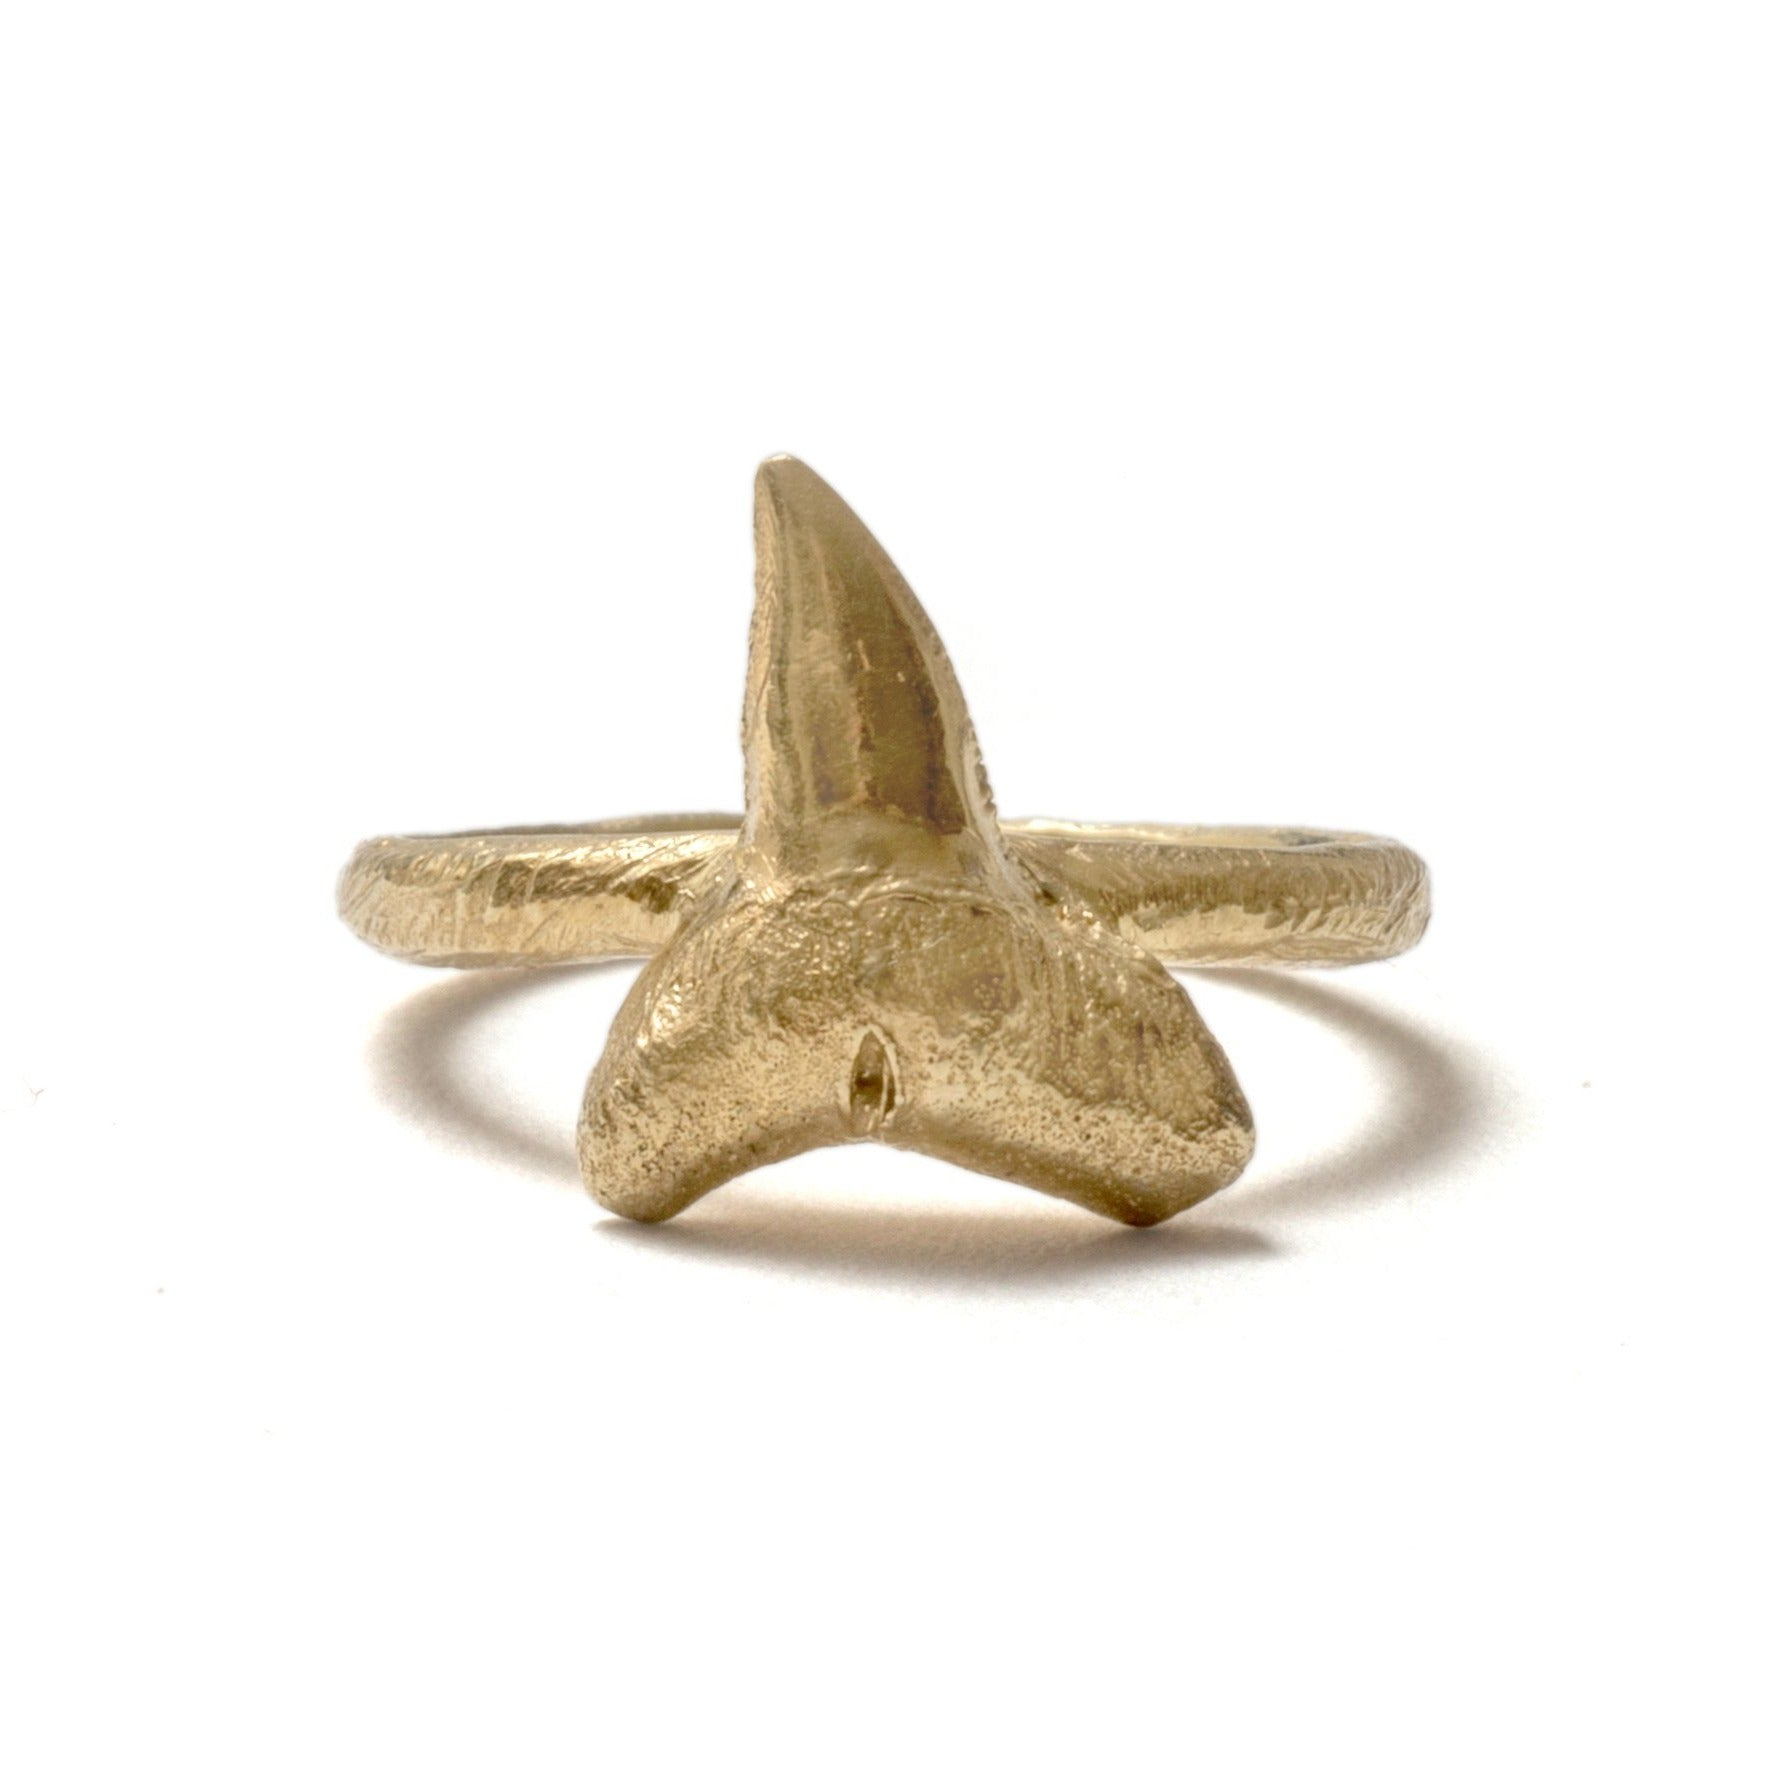 (SALE) Tiny sharks tooth ring ~ Gold